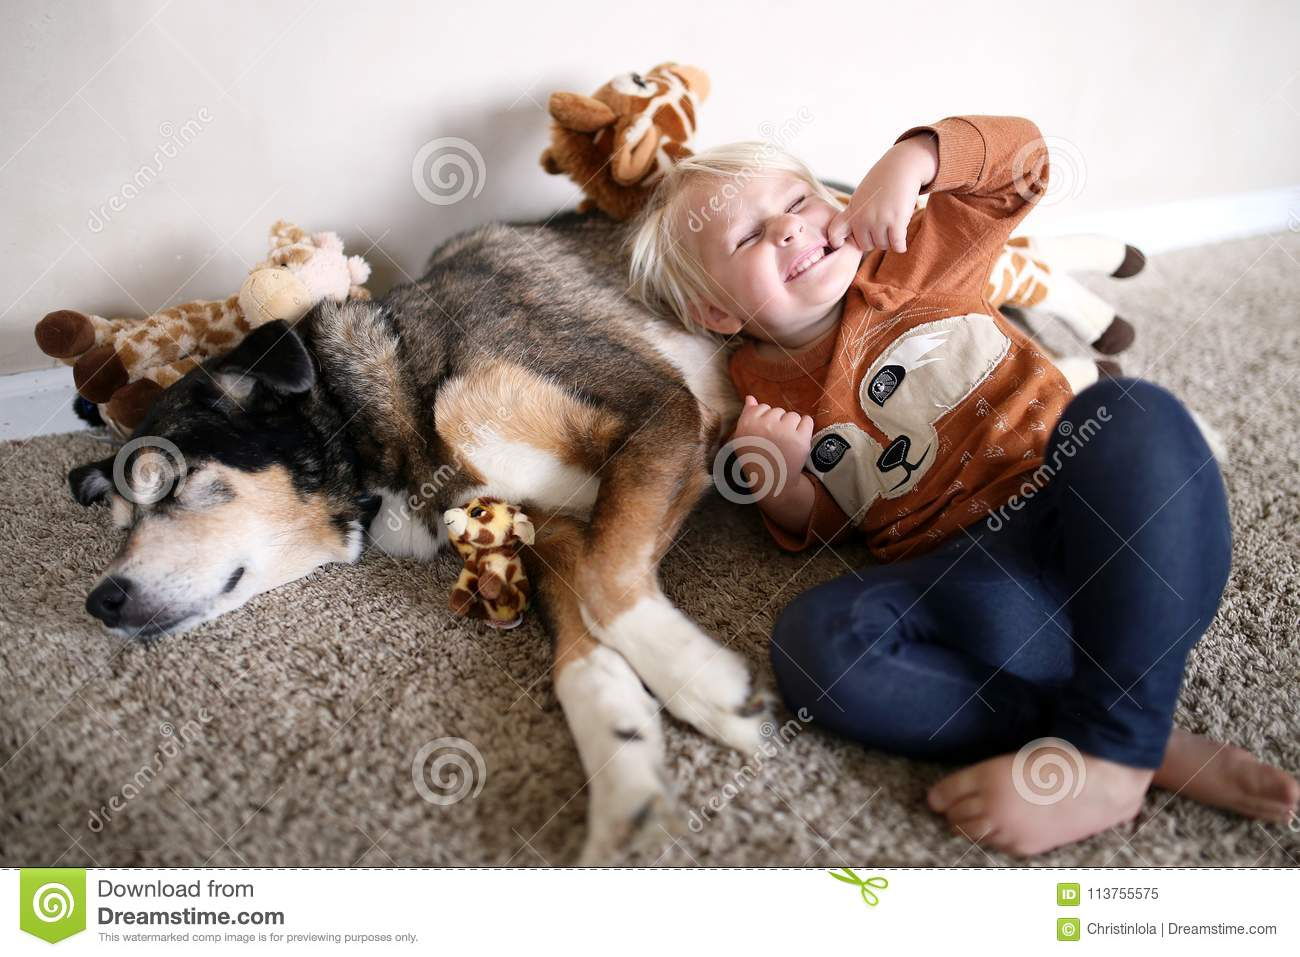 Young Child Playing With Her Pet German Shepherd Dog And Giraffe